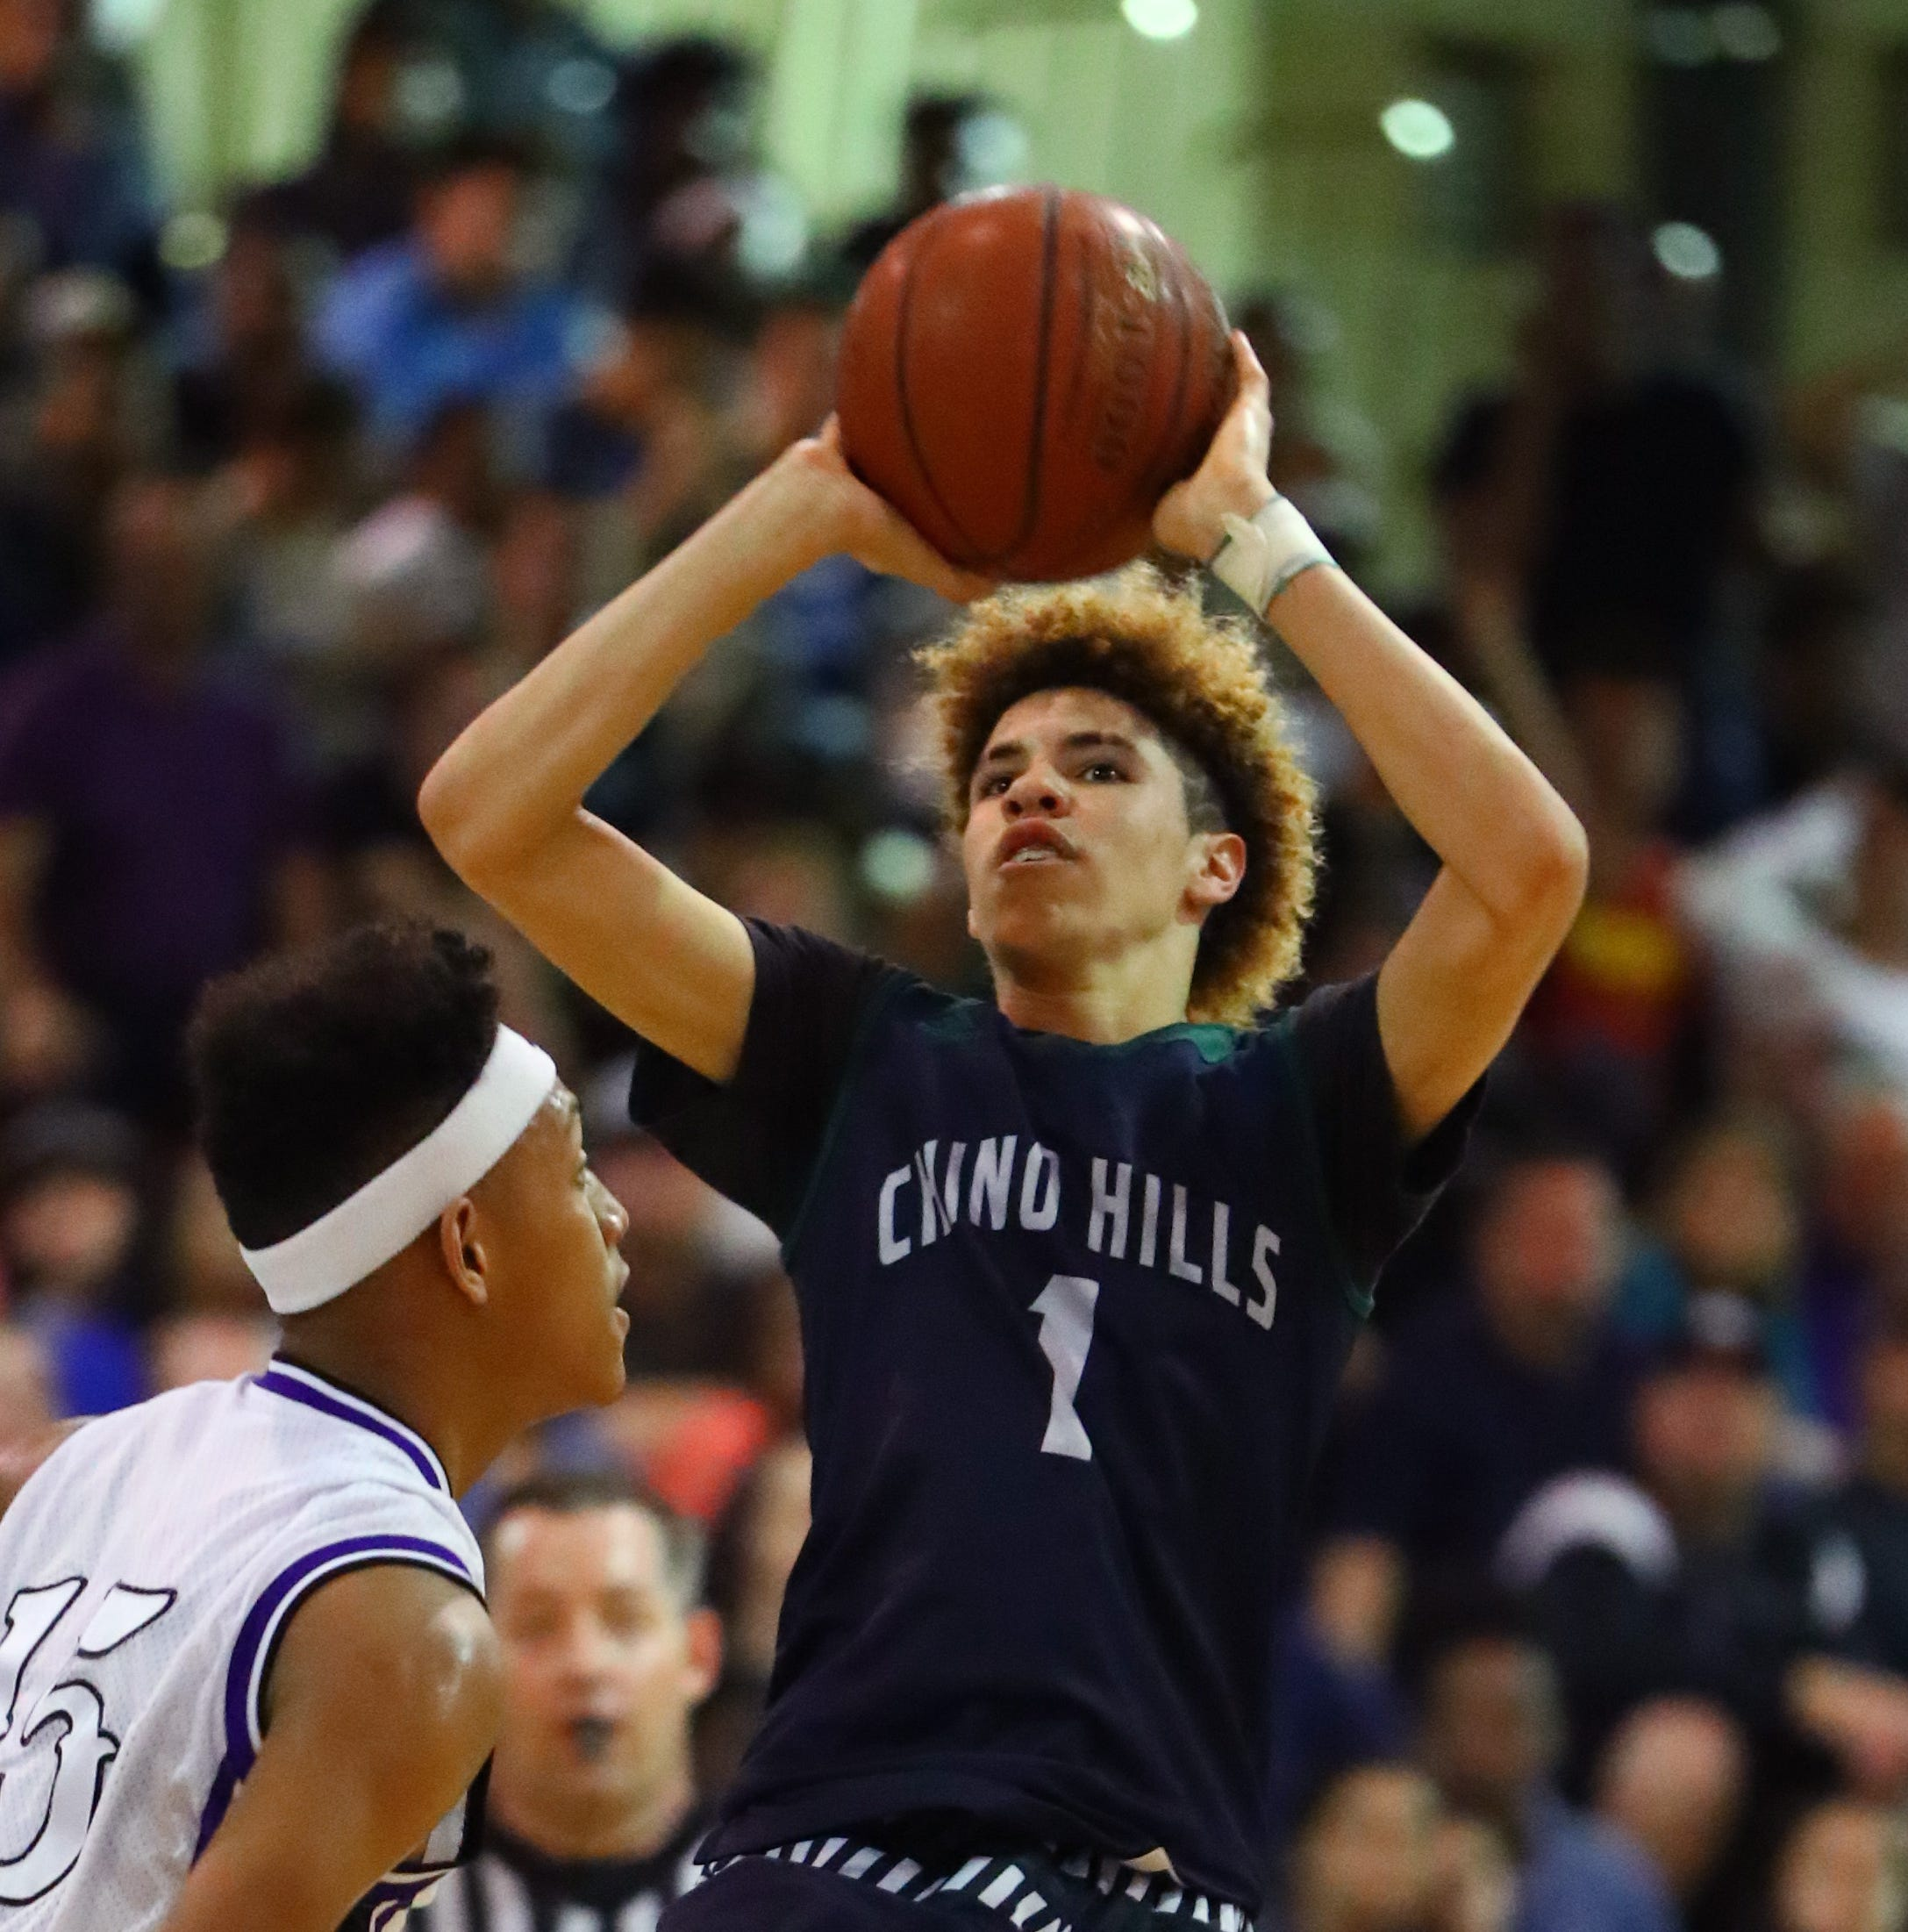 LaMelo Ball, brother of Lonzo Ball, to play at Governor's Challenge for Spire Institute